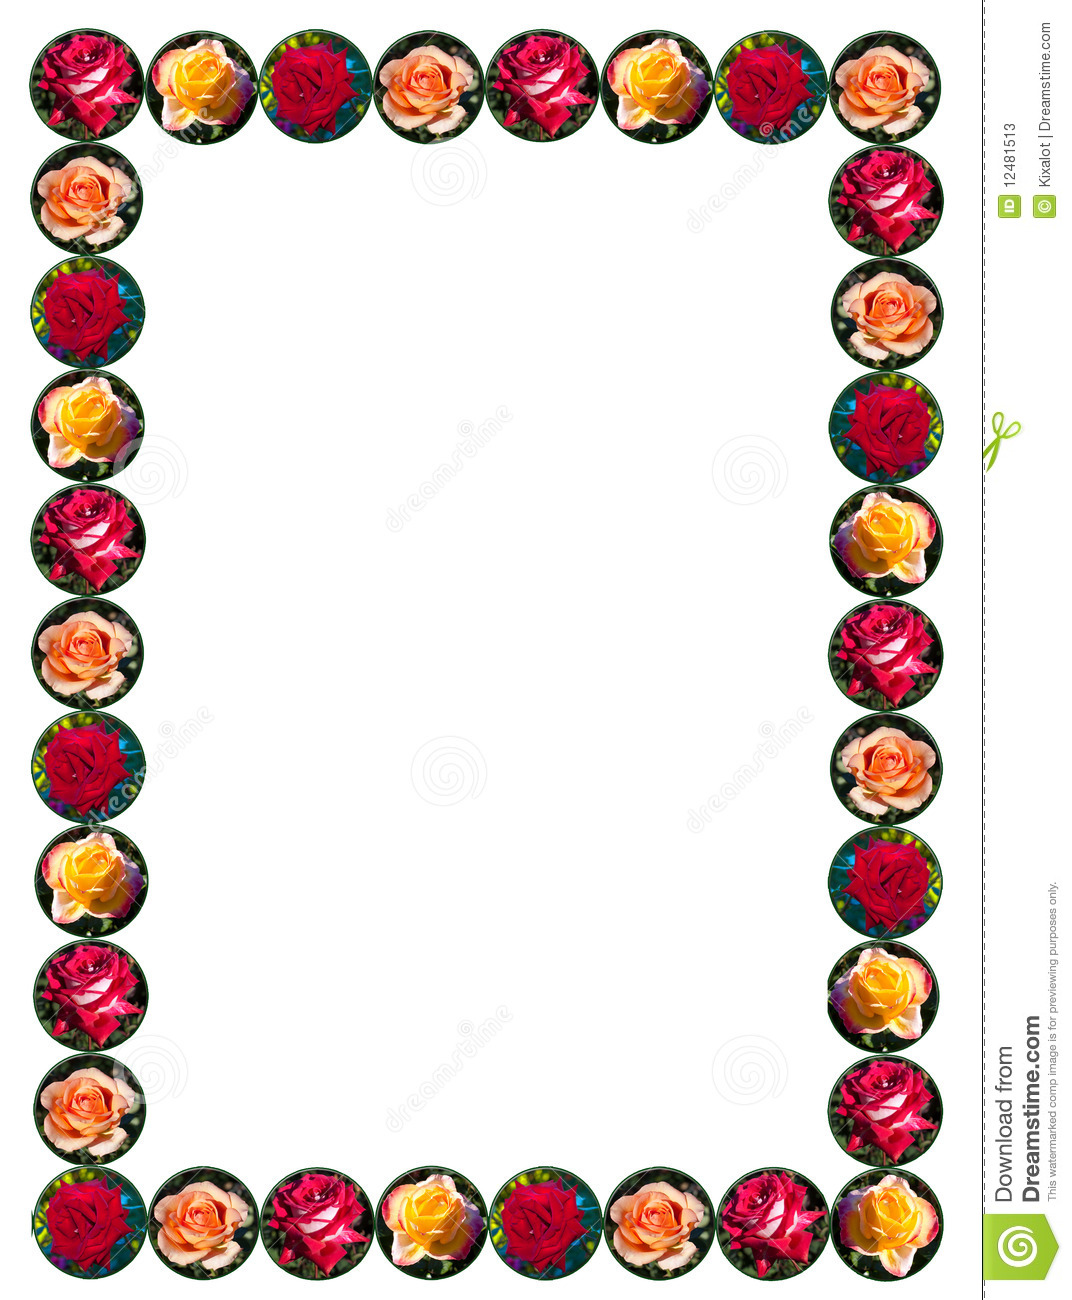 Frame/border composed of red, peach, pink and yellow roses in round ...